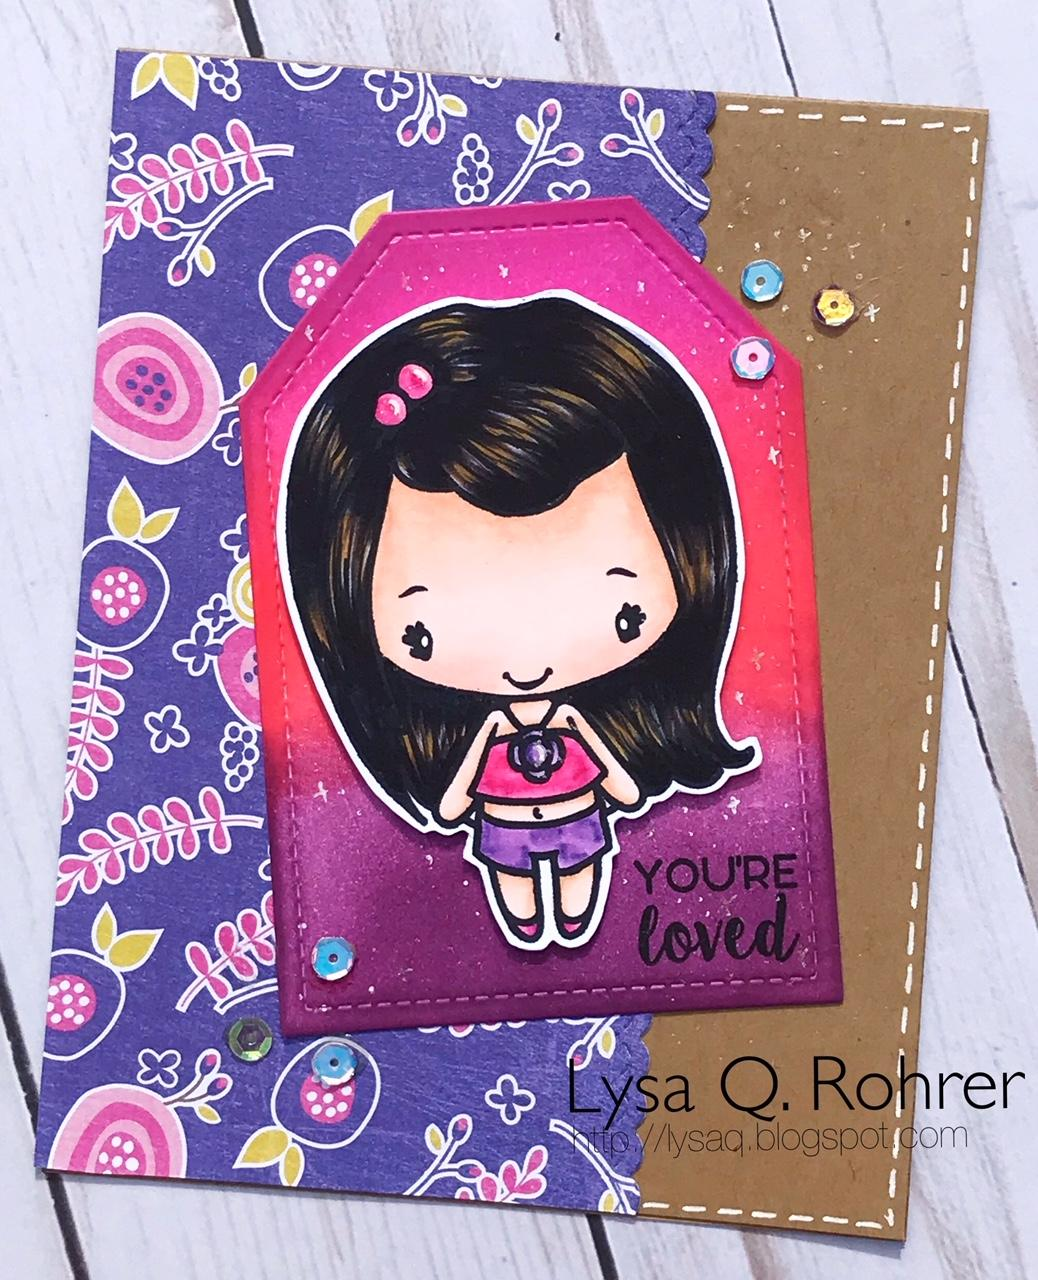 Guest Designer Lysa with a Fun Anya Card!